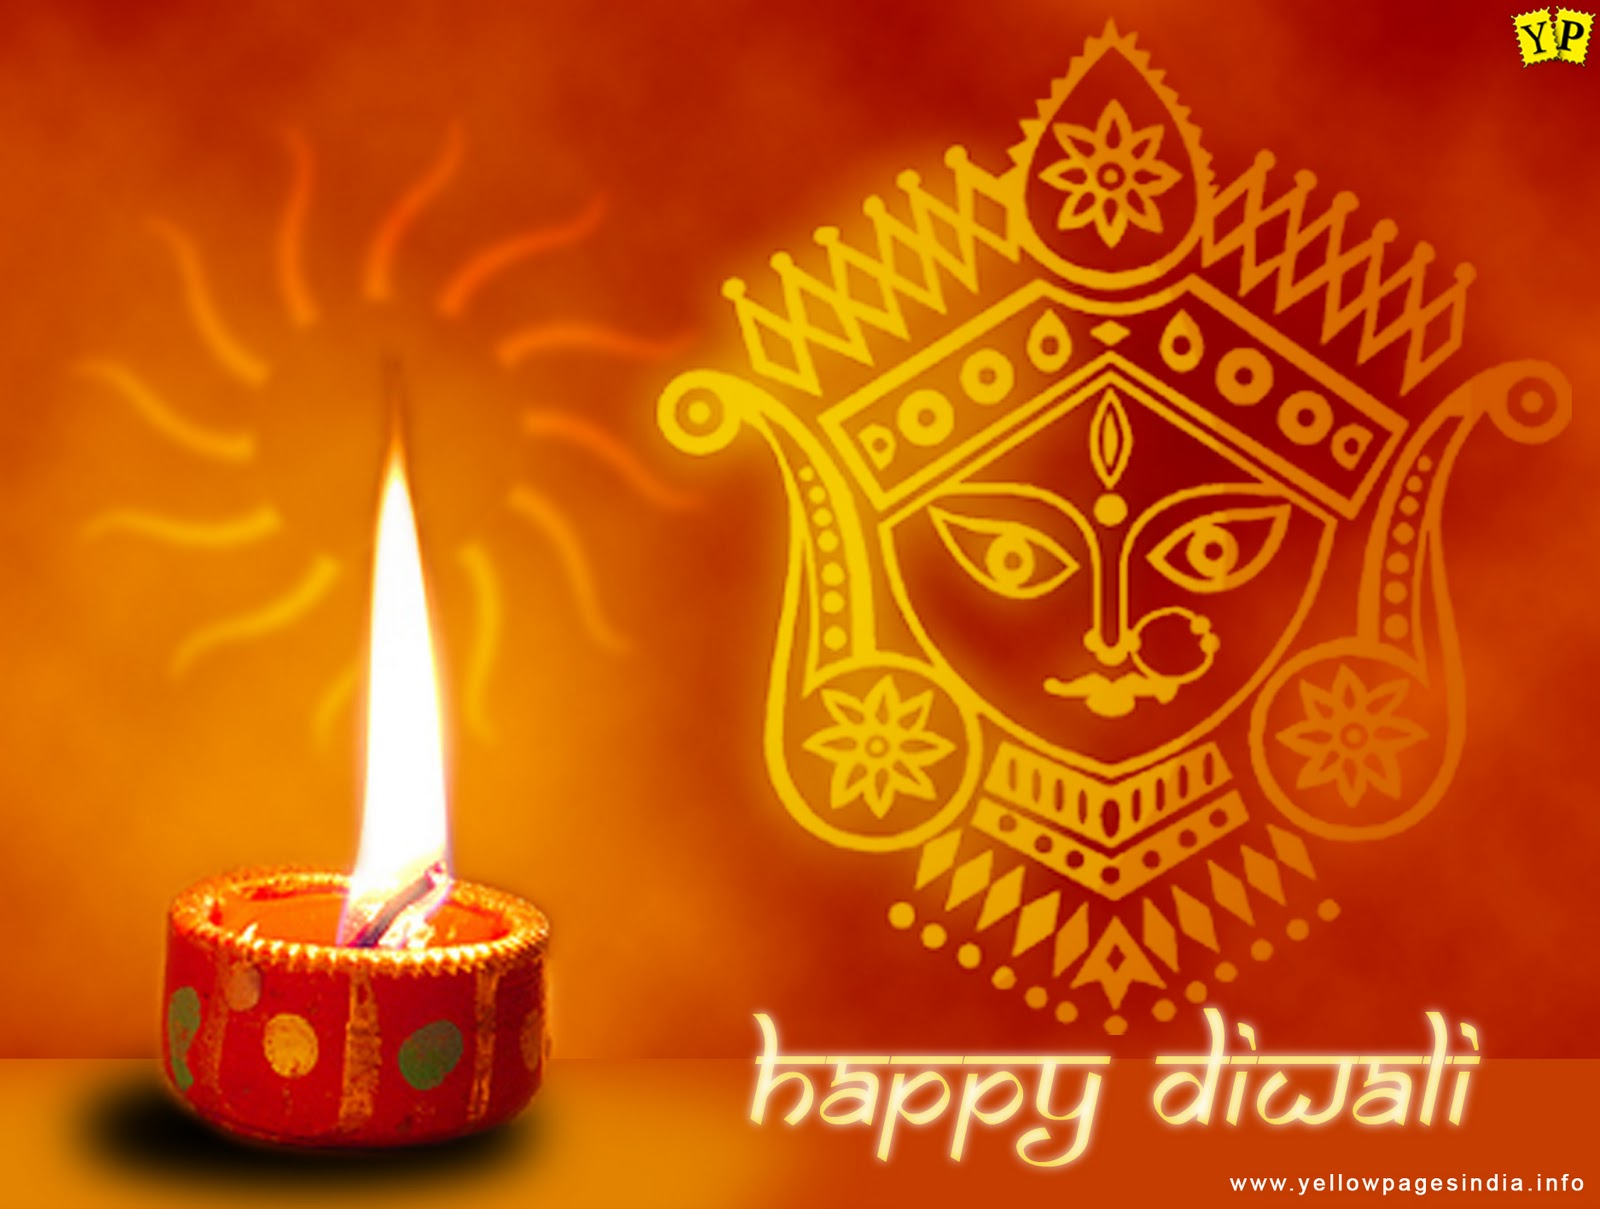 Gujrat Diwali Greetings Diwali Wishes Wish You Happy Dipawali